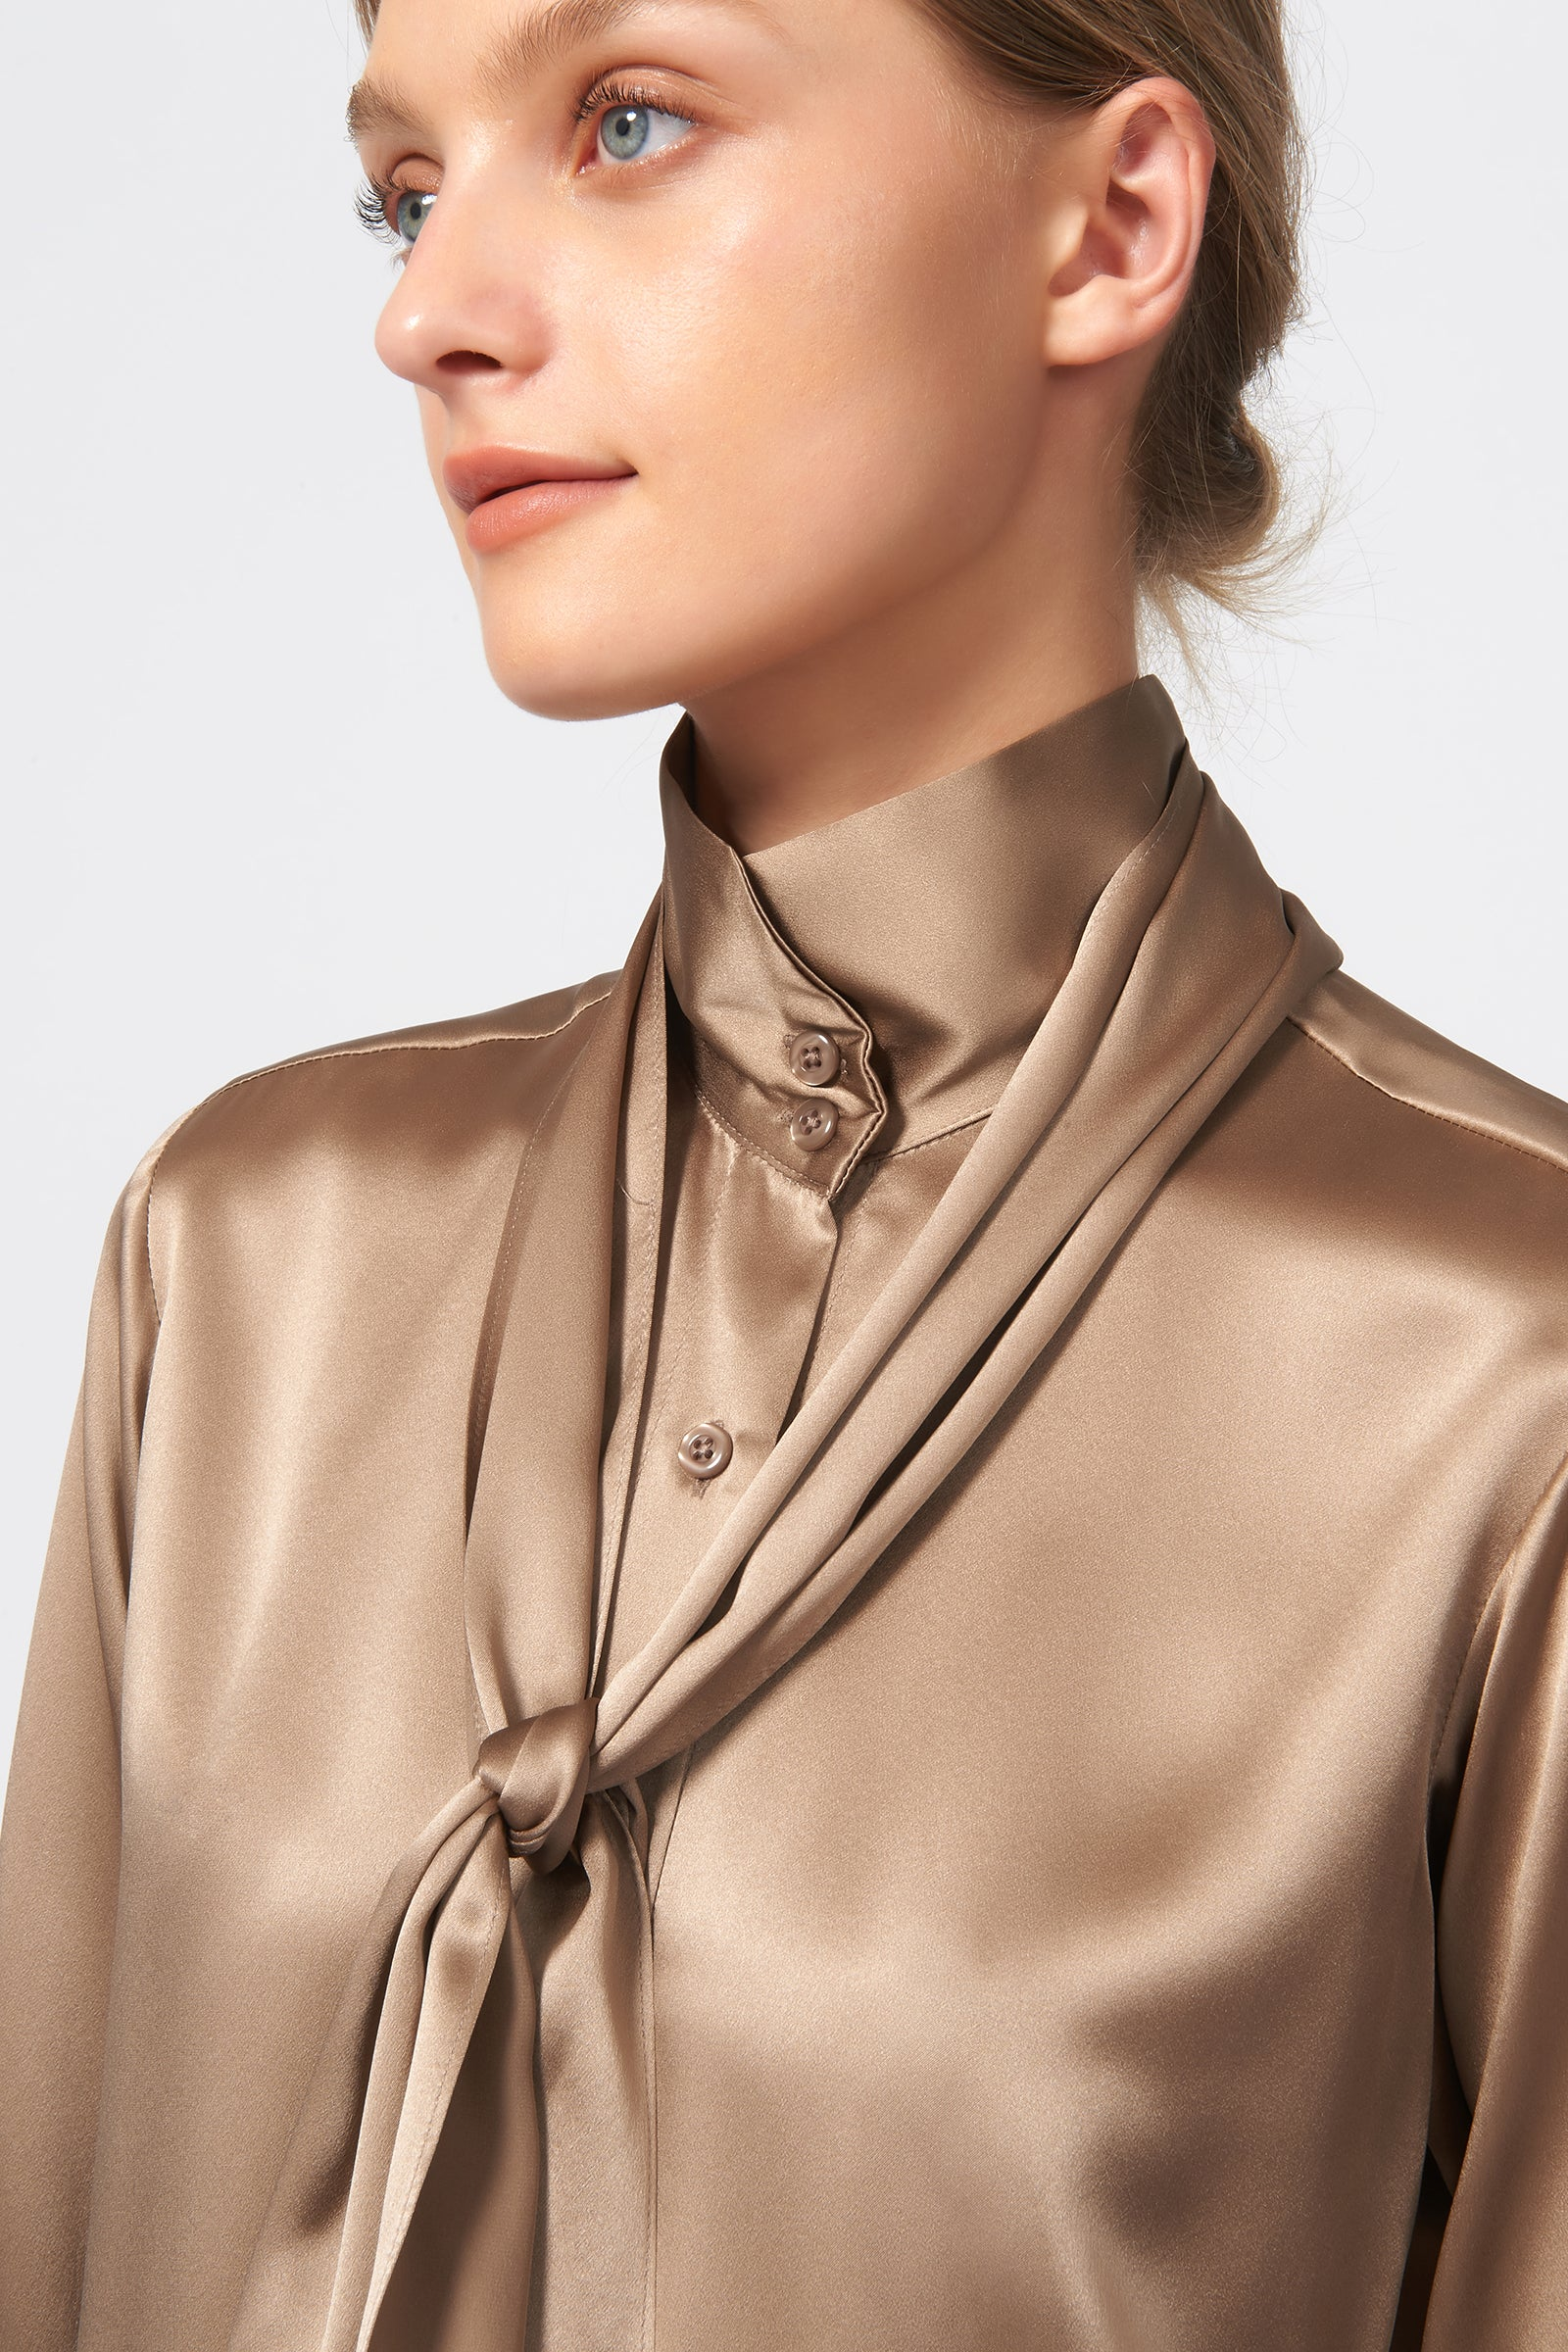 Kal Rieman Scarf Tie Blouse in Charmeuse on Model Front Detail View